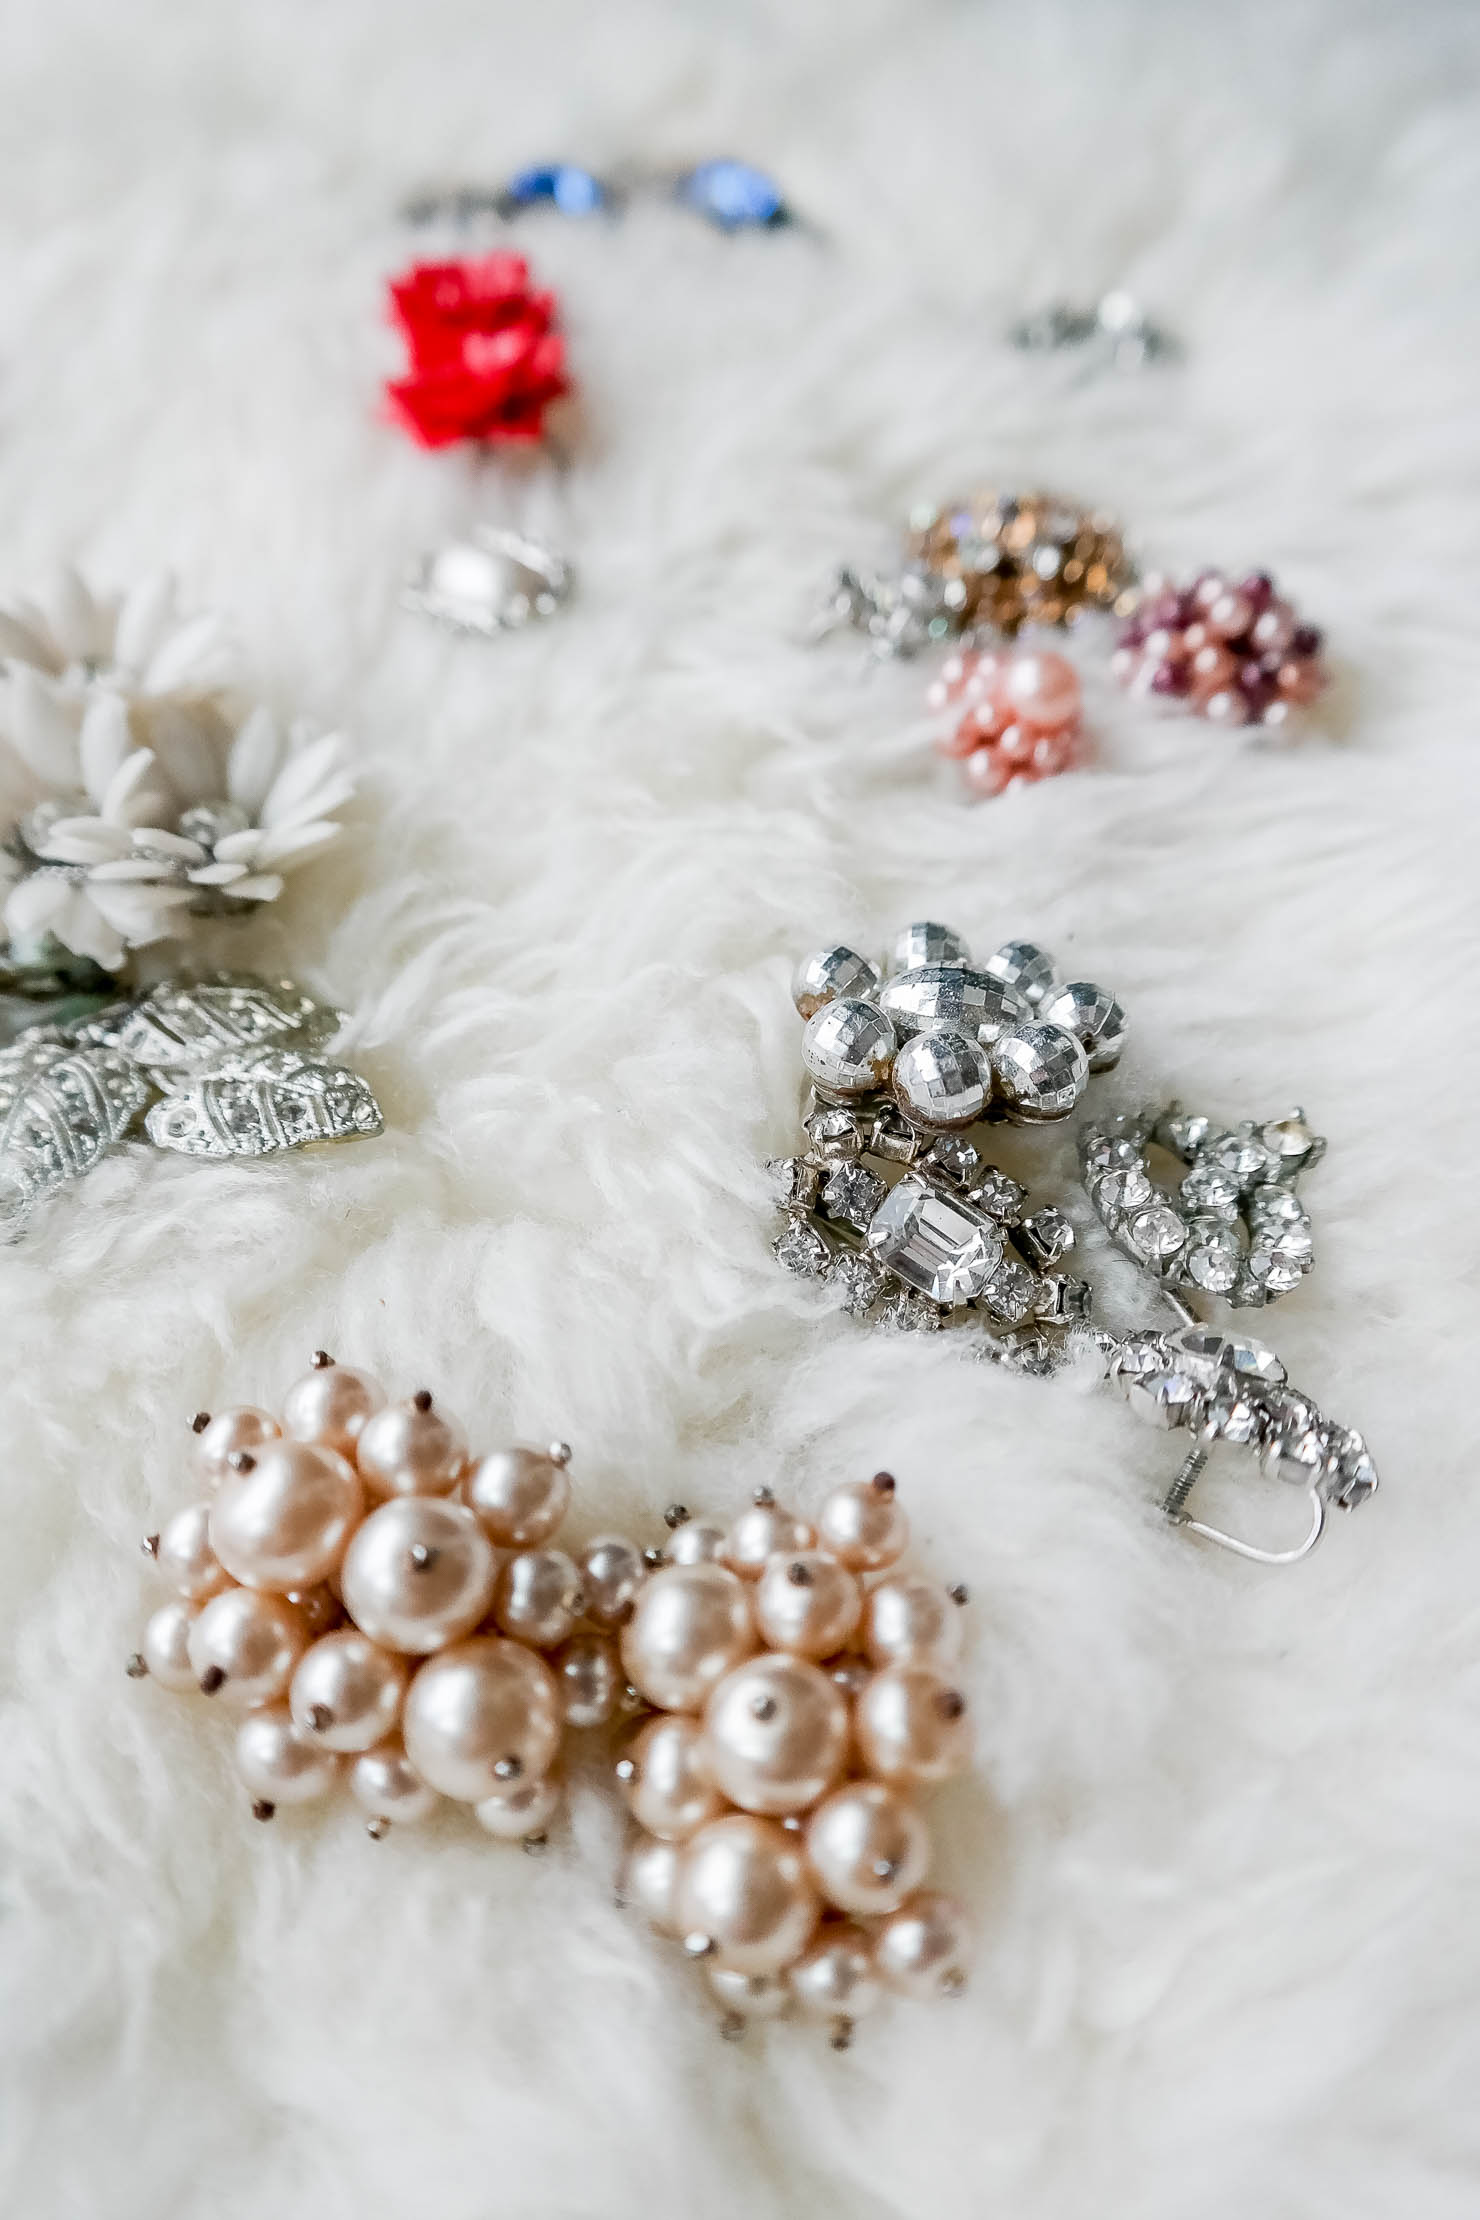 wishes-and-reality-my-jewelry-wish-list-for-the-holidays-$1000-jewelry sweepstakes